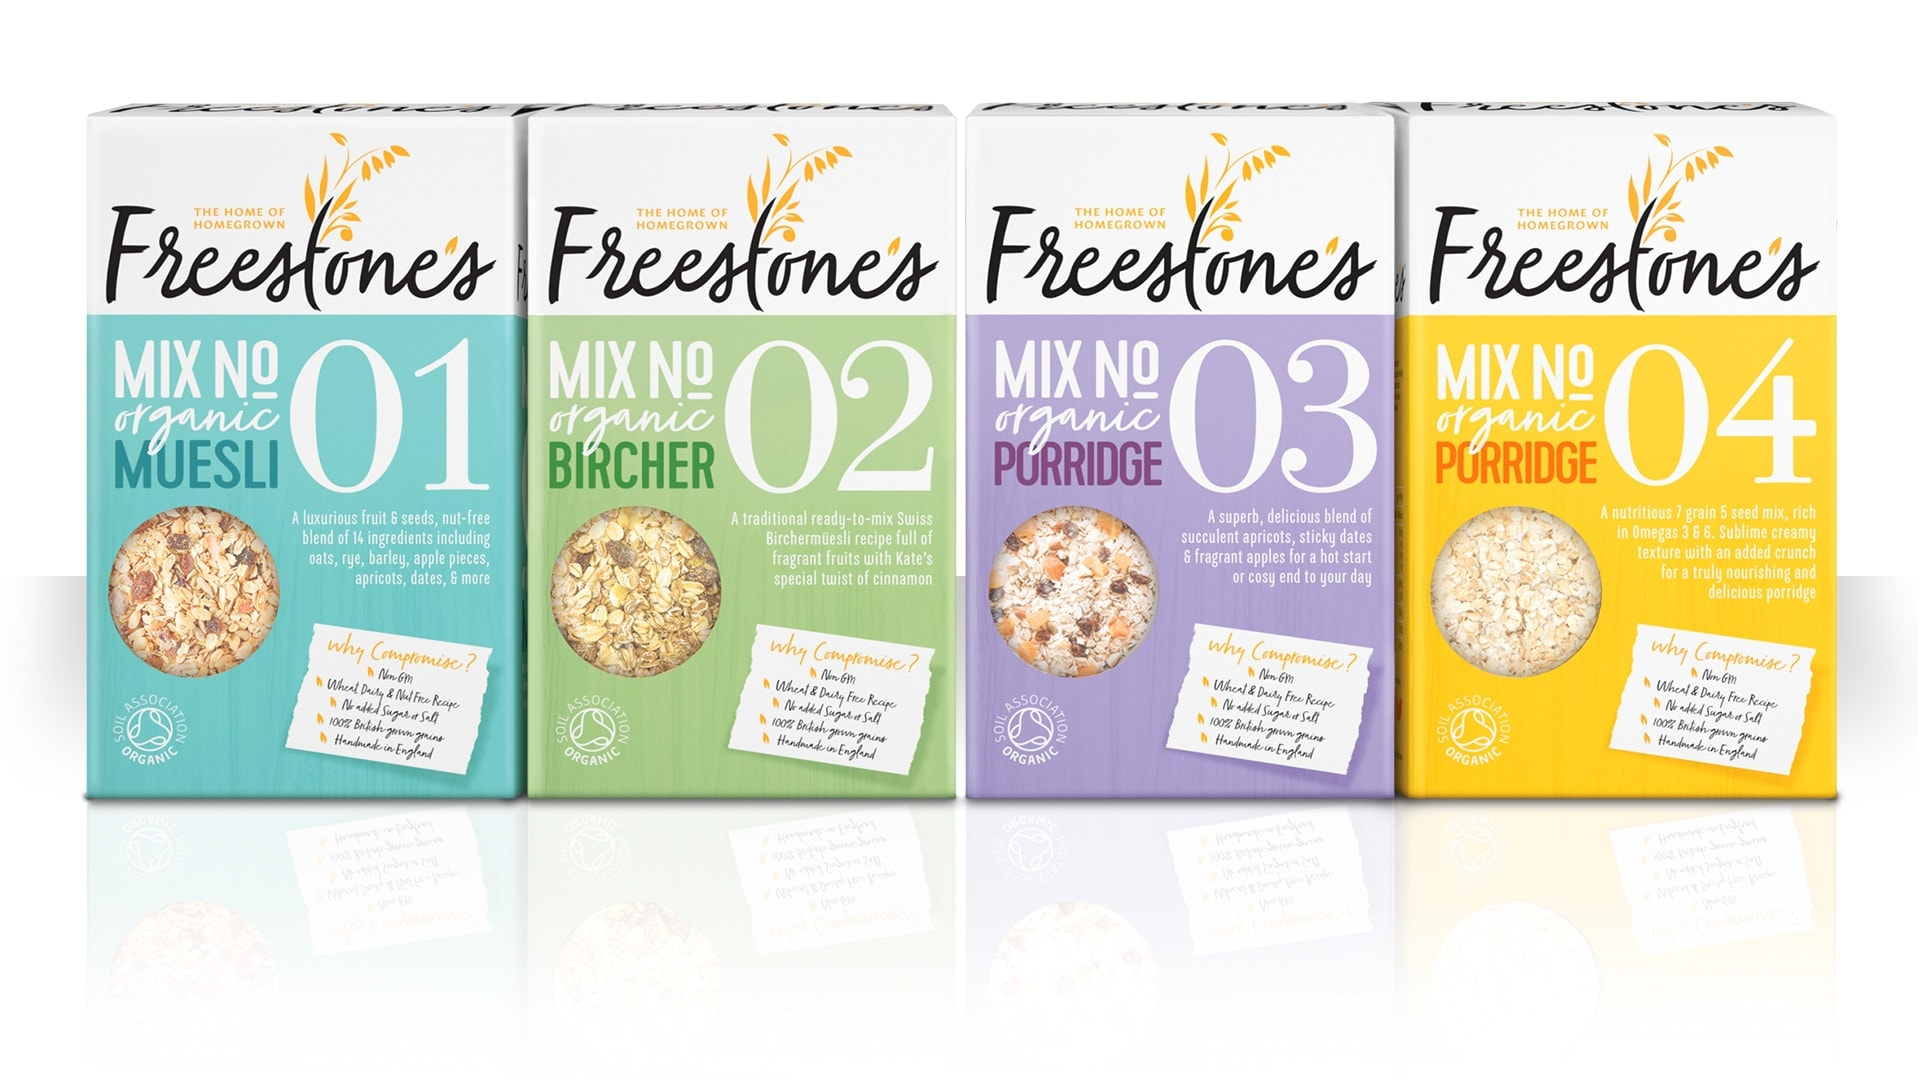 freestones branding and packaging design